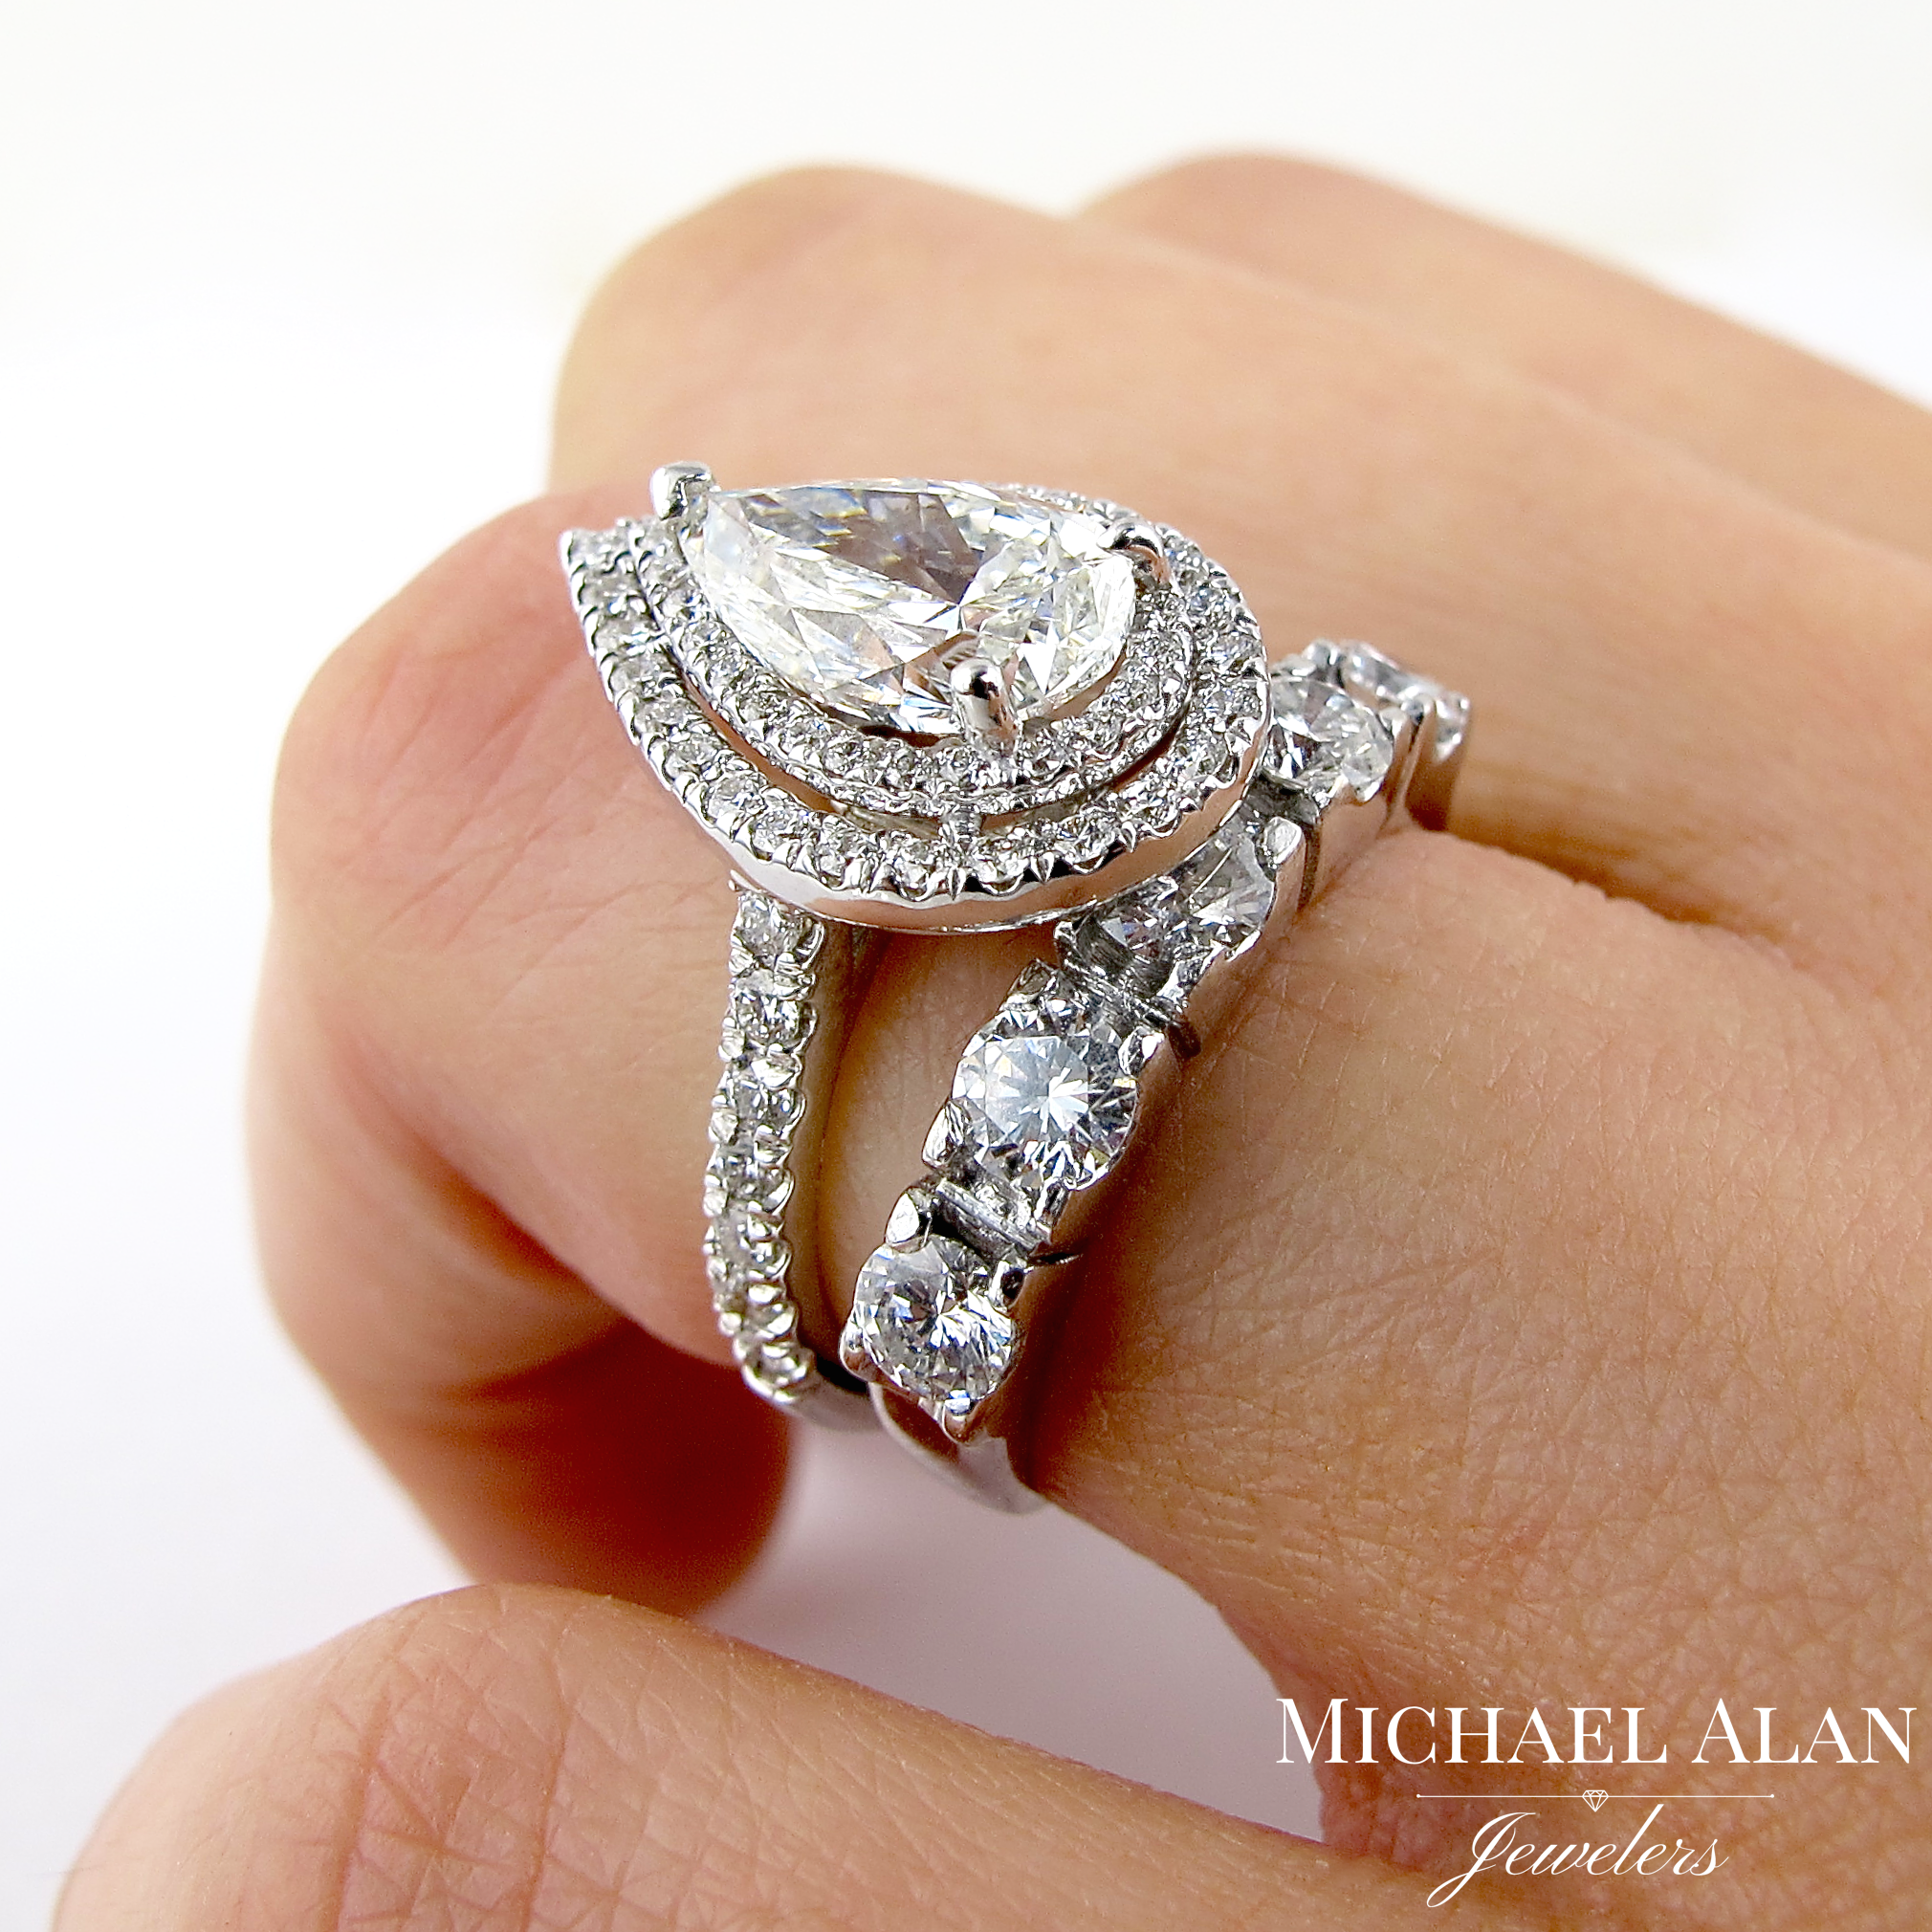 This wedding band creates a loud and robust contrast with the engagement ring by having larger diamonds and a wider band.